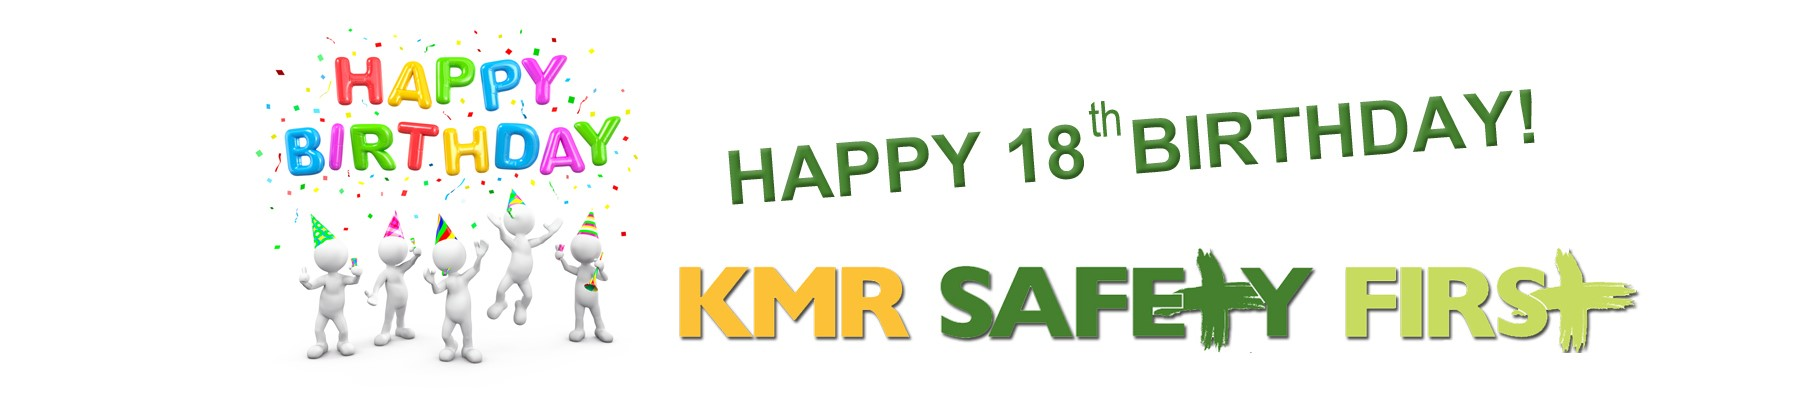 KMR Safety First